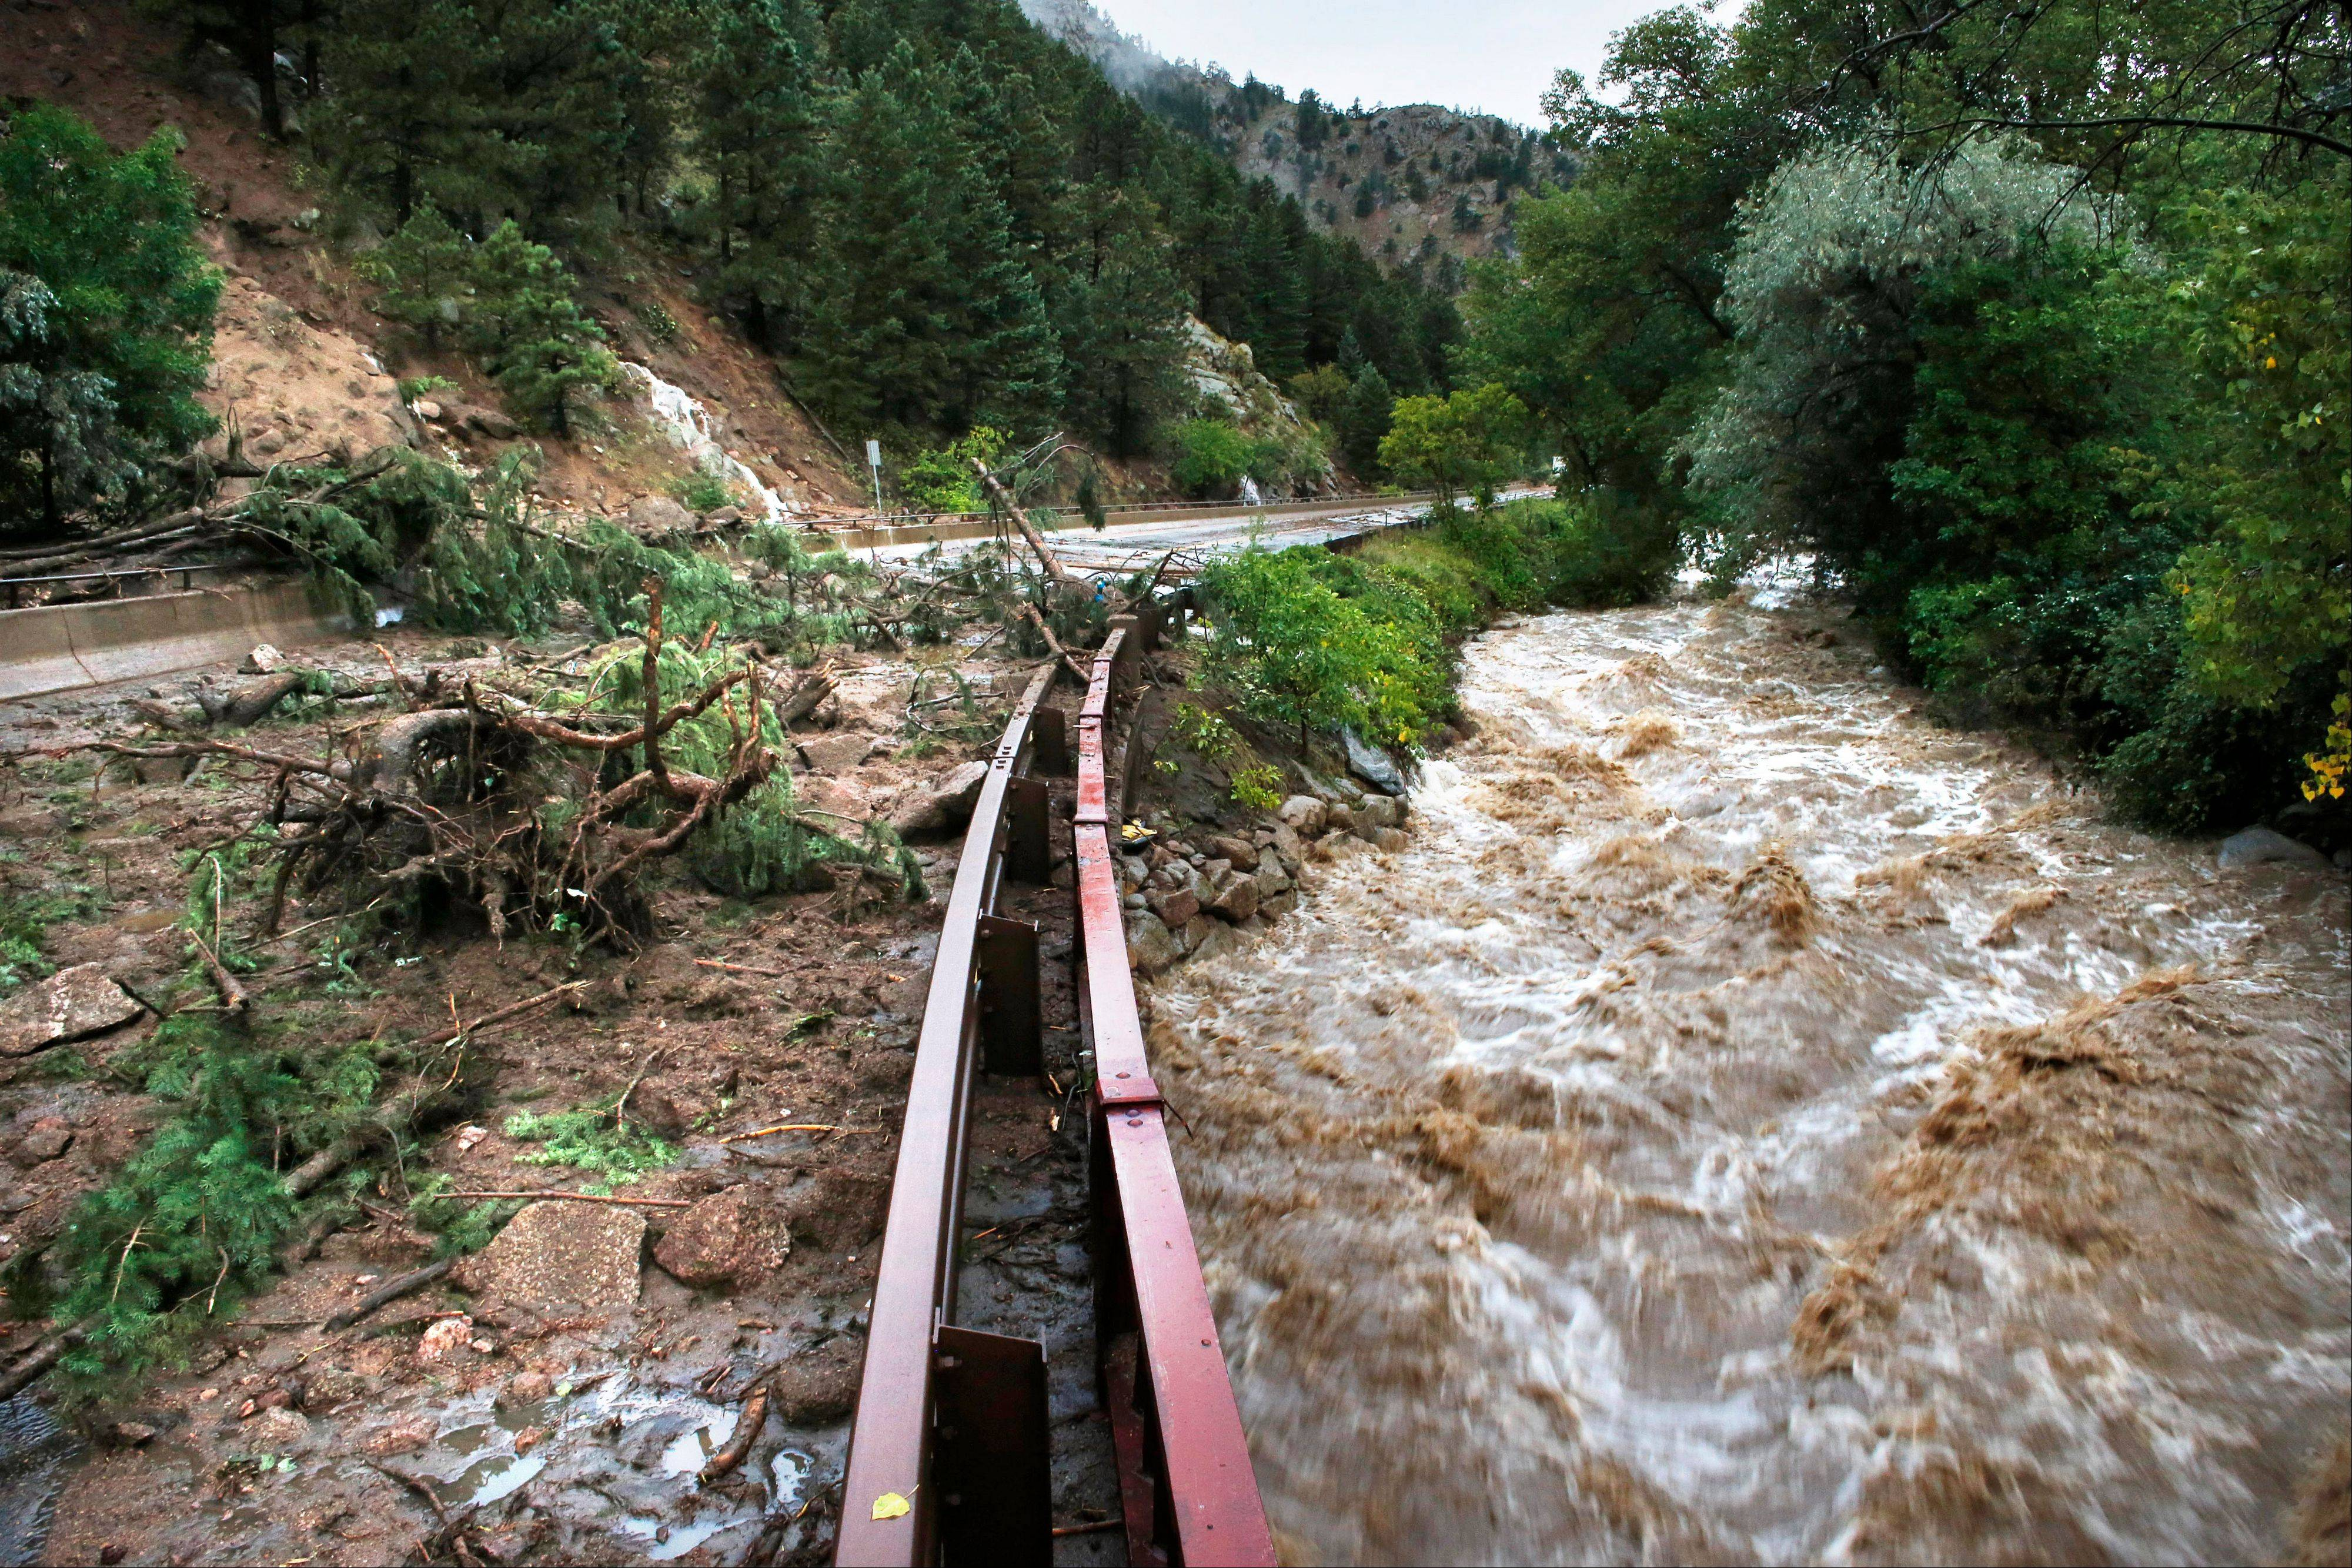 Boulder Creek flows at high speed next to a road closed off by debris from days of rain and flooding, at the base of Boulder Canyon, Colo., Friday, Sept. 13, 2013. People in Boulder were ordered to evacuate as water rose to dangerous levels amid a storm system that has been dropping rain for a week. Rescuers struggled to reach dozens of people cut off by flooding in mountain communities, while residents in the Denver area and other areas were warned to stay off flooded streets.